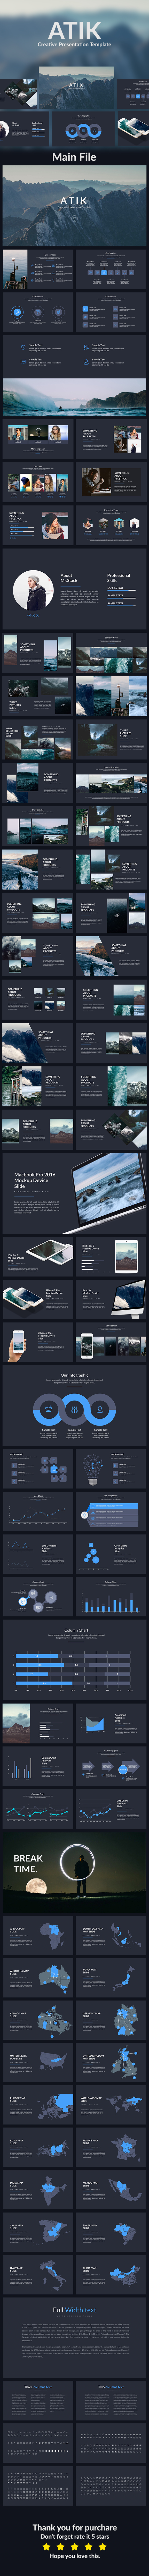 Atik - Creative Powerpoint Template - Creative PowerPoint Templates